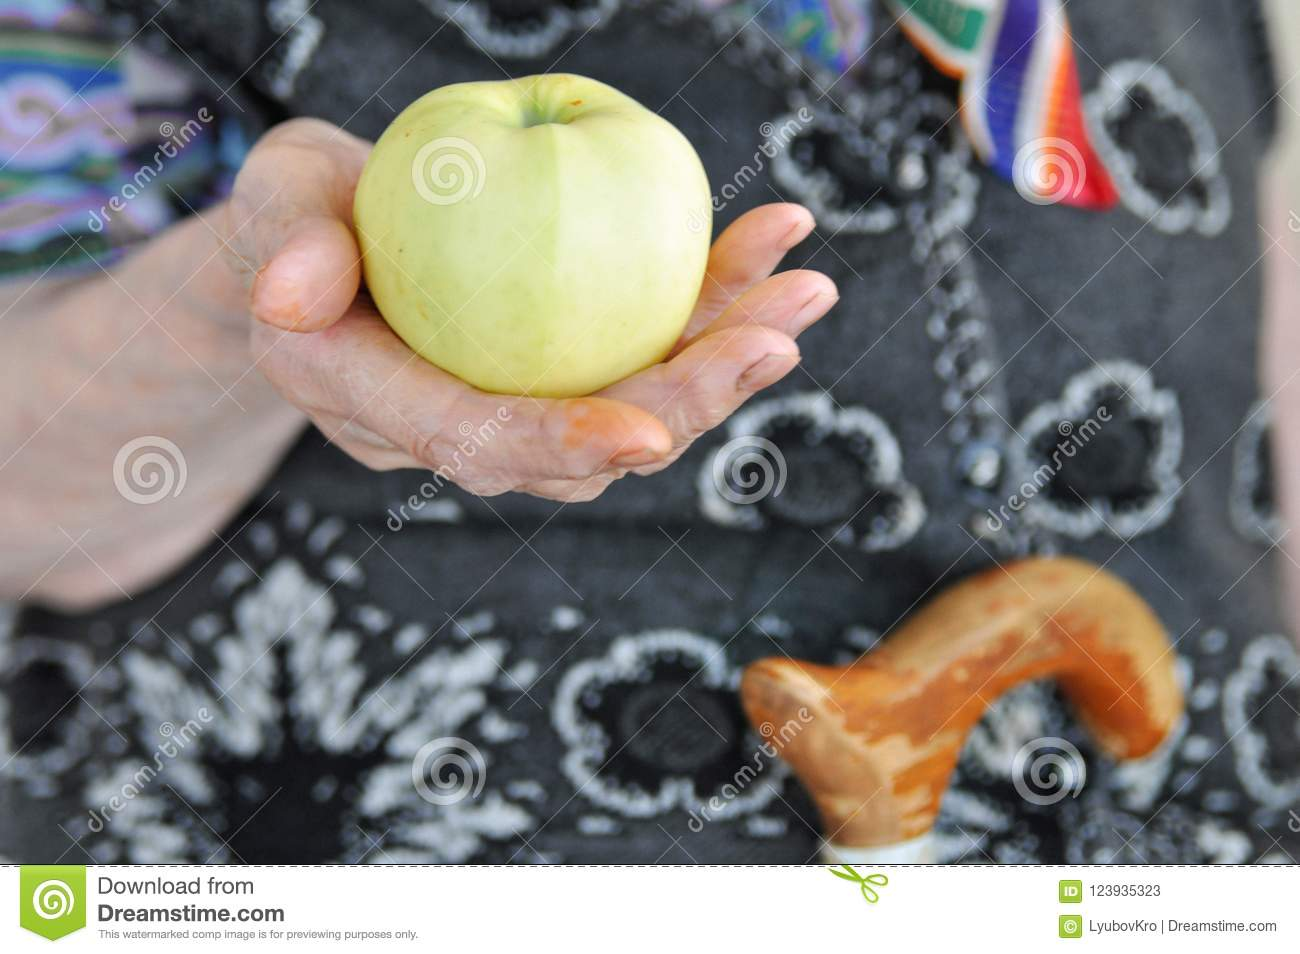 Ripe Apple in the hand of an elderly woman in a knitted vest for a walk. 90 years. Health and nutrition. Close-up